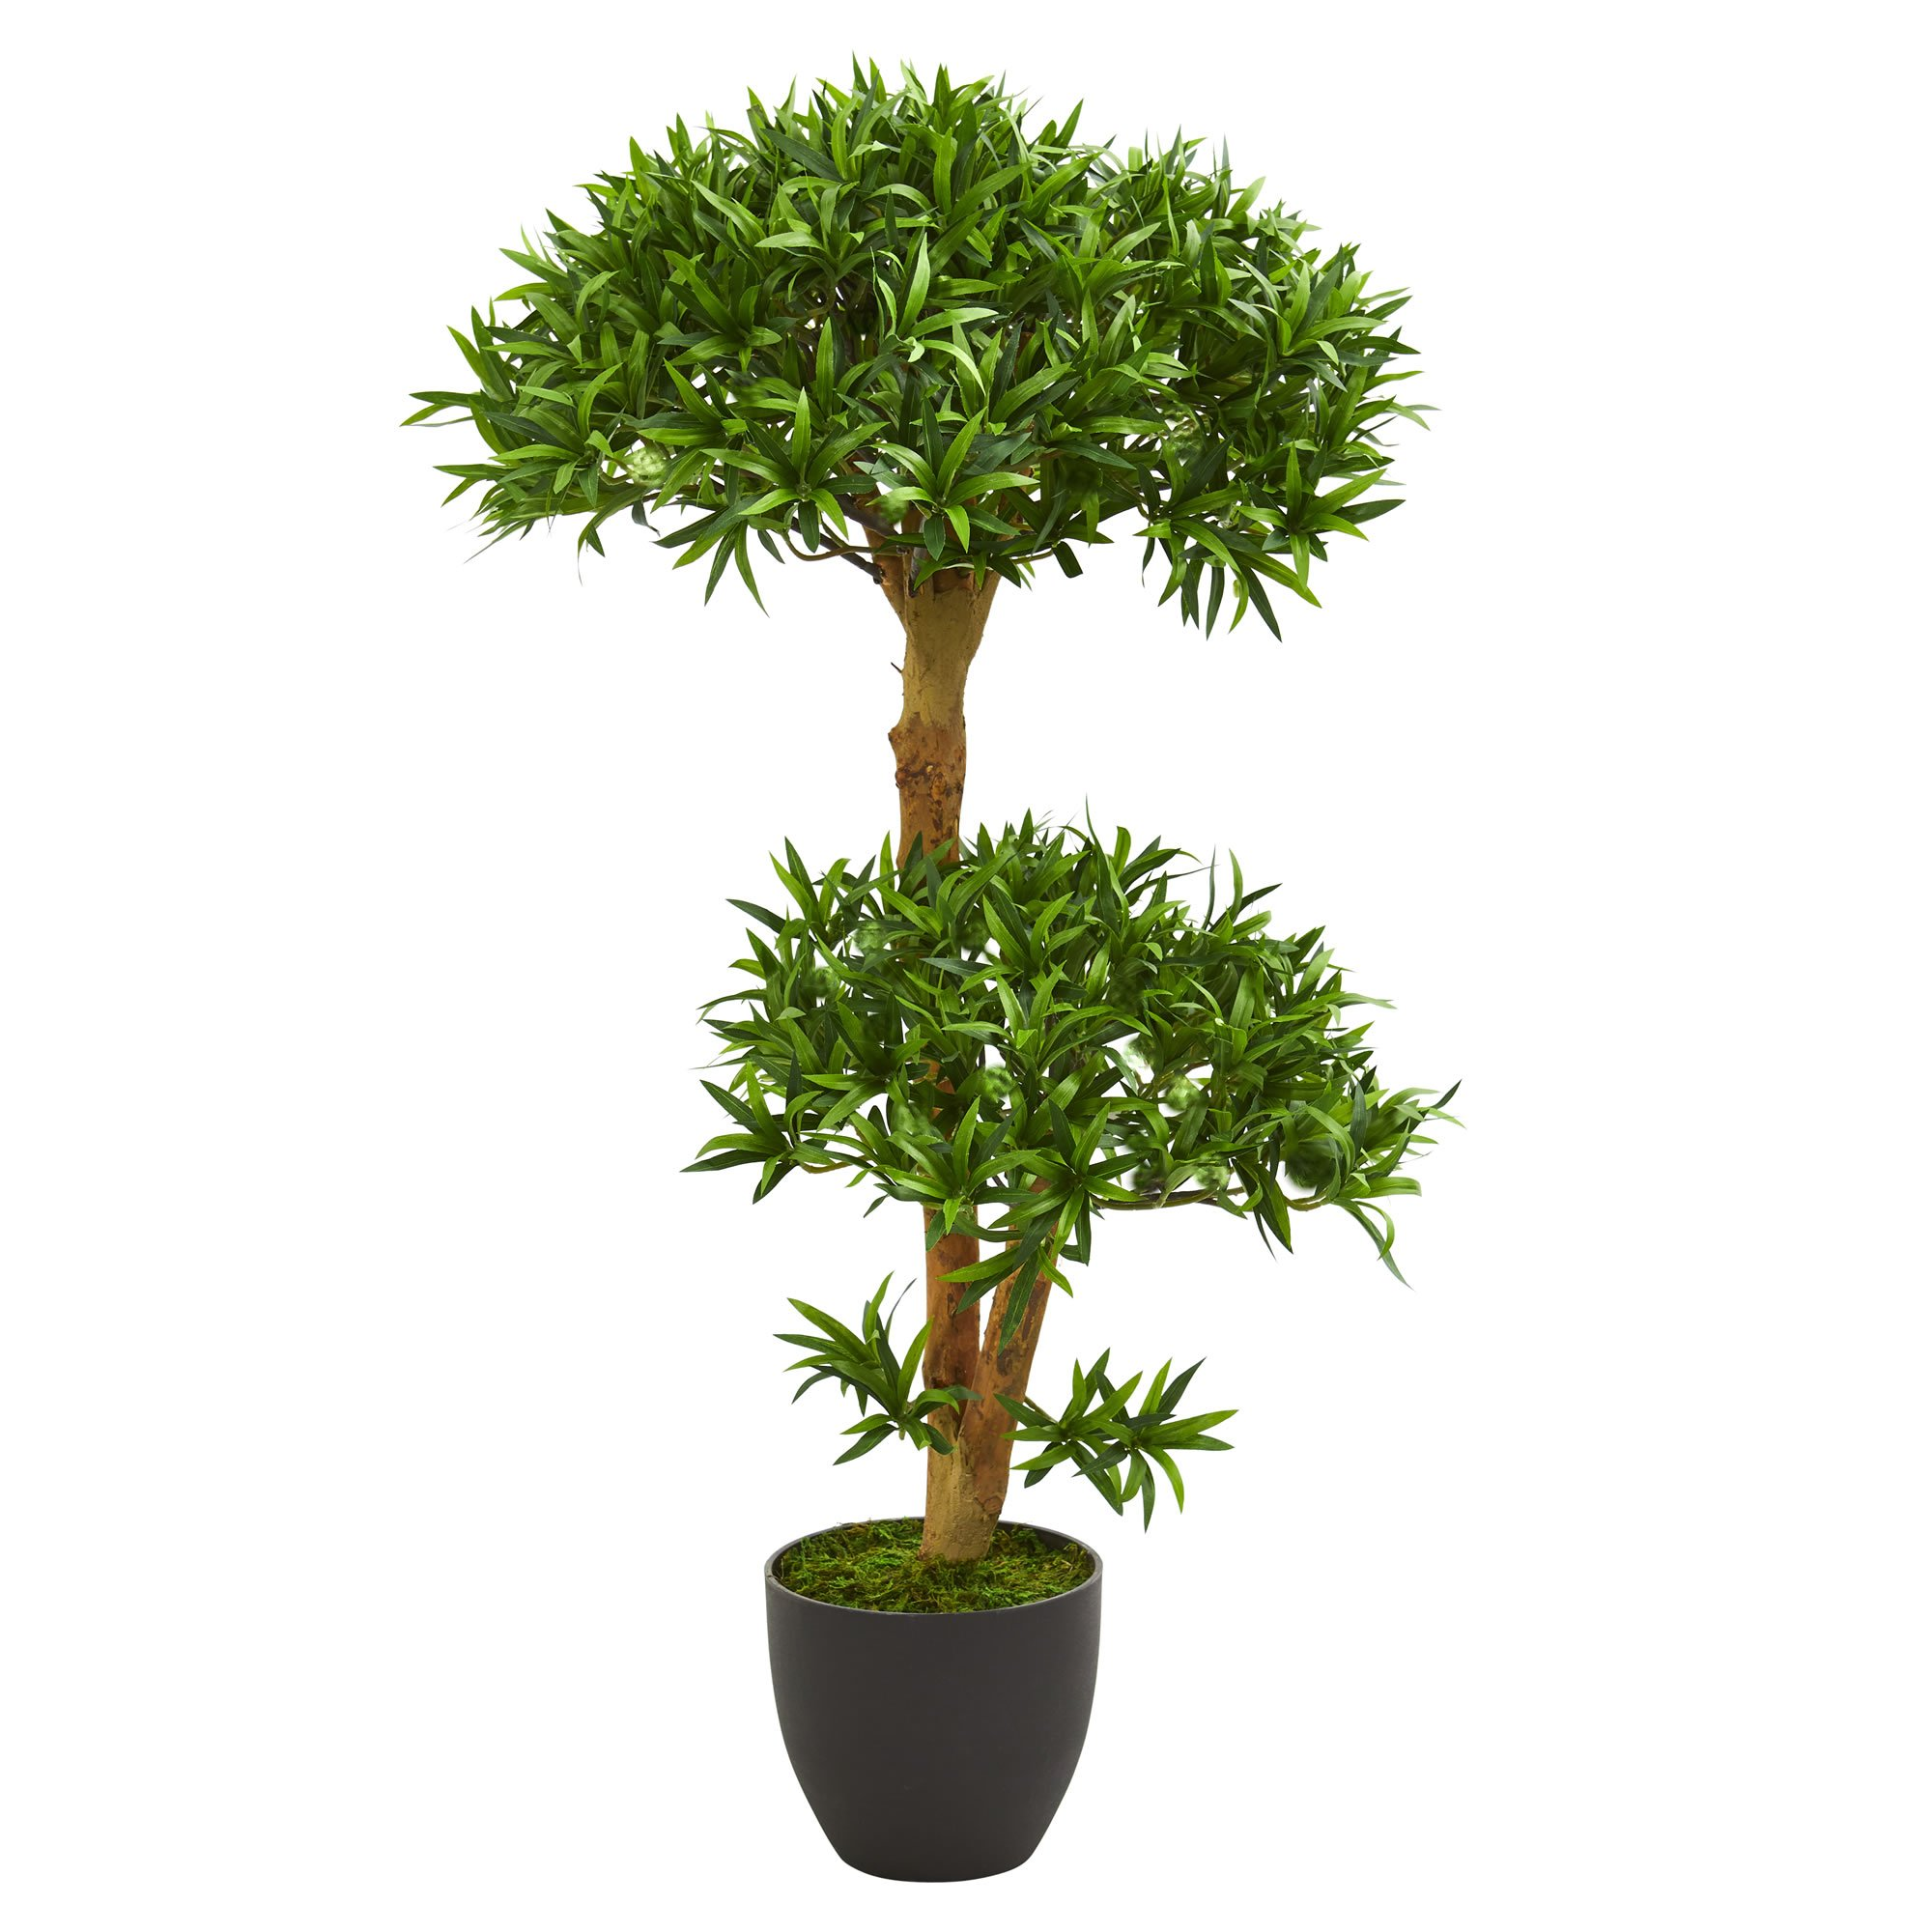 Nearly Natural 5554 3' Bonsai Styled Podocarpus Artificial Tree Plant, Green